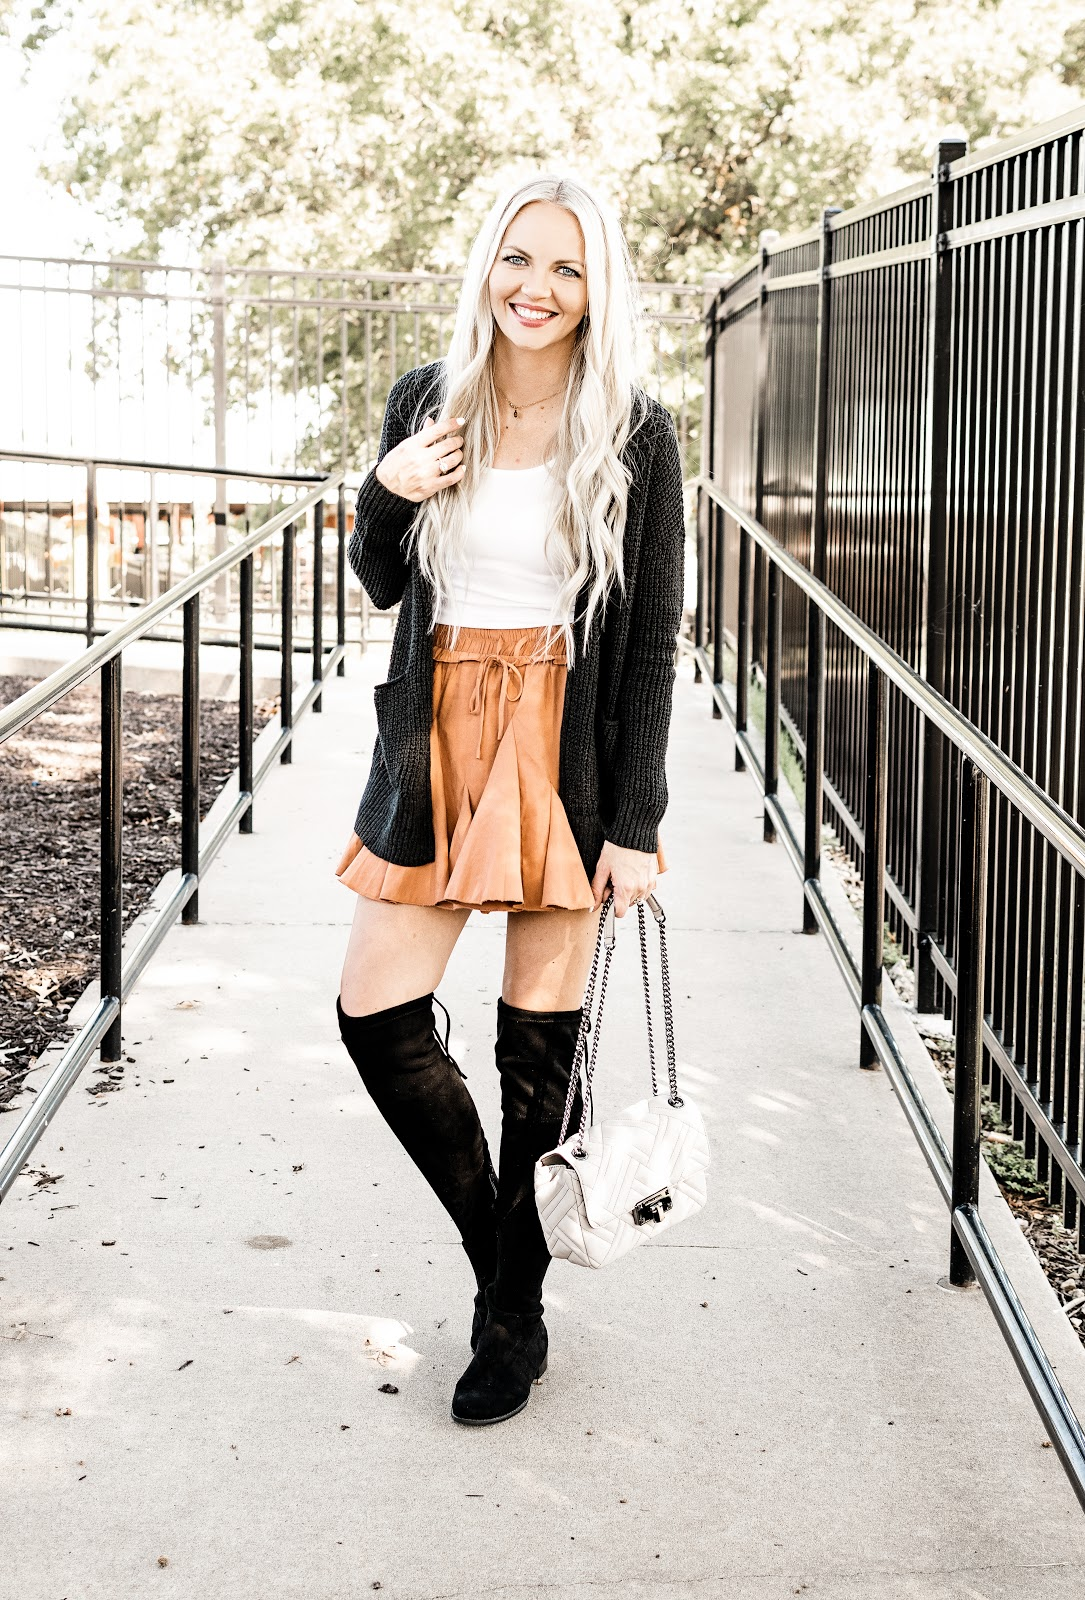 One Rust Skirt + Fall Staples = Endless Outfits fall outfit ideas pleated skirt orange skirt burnt orange rust sneakers leopard denim jacket black henley basic tanks beige cardigan black cardigan gray cardigan over the knee boots superga platform sneakers